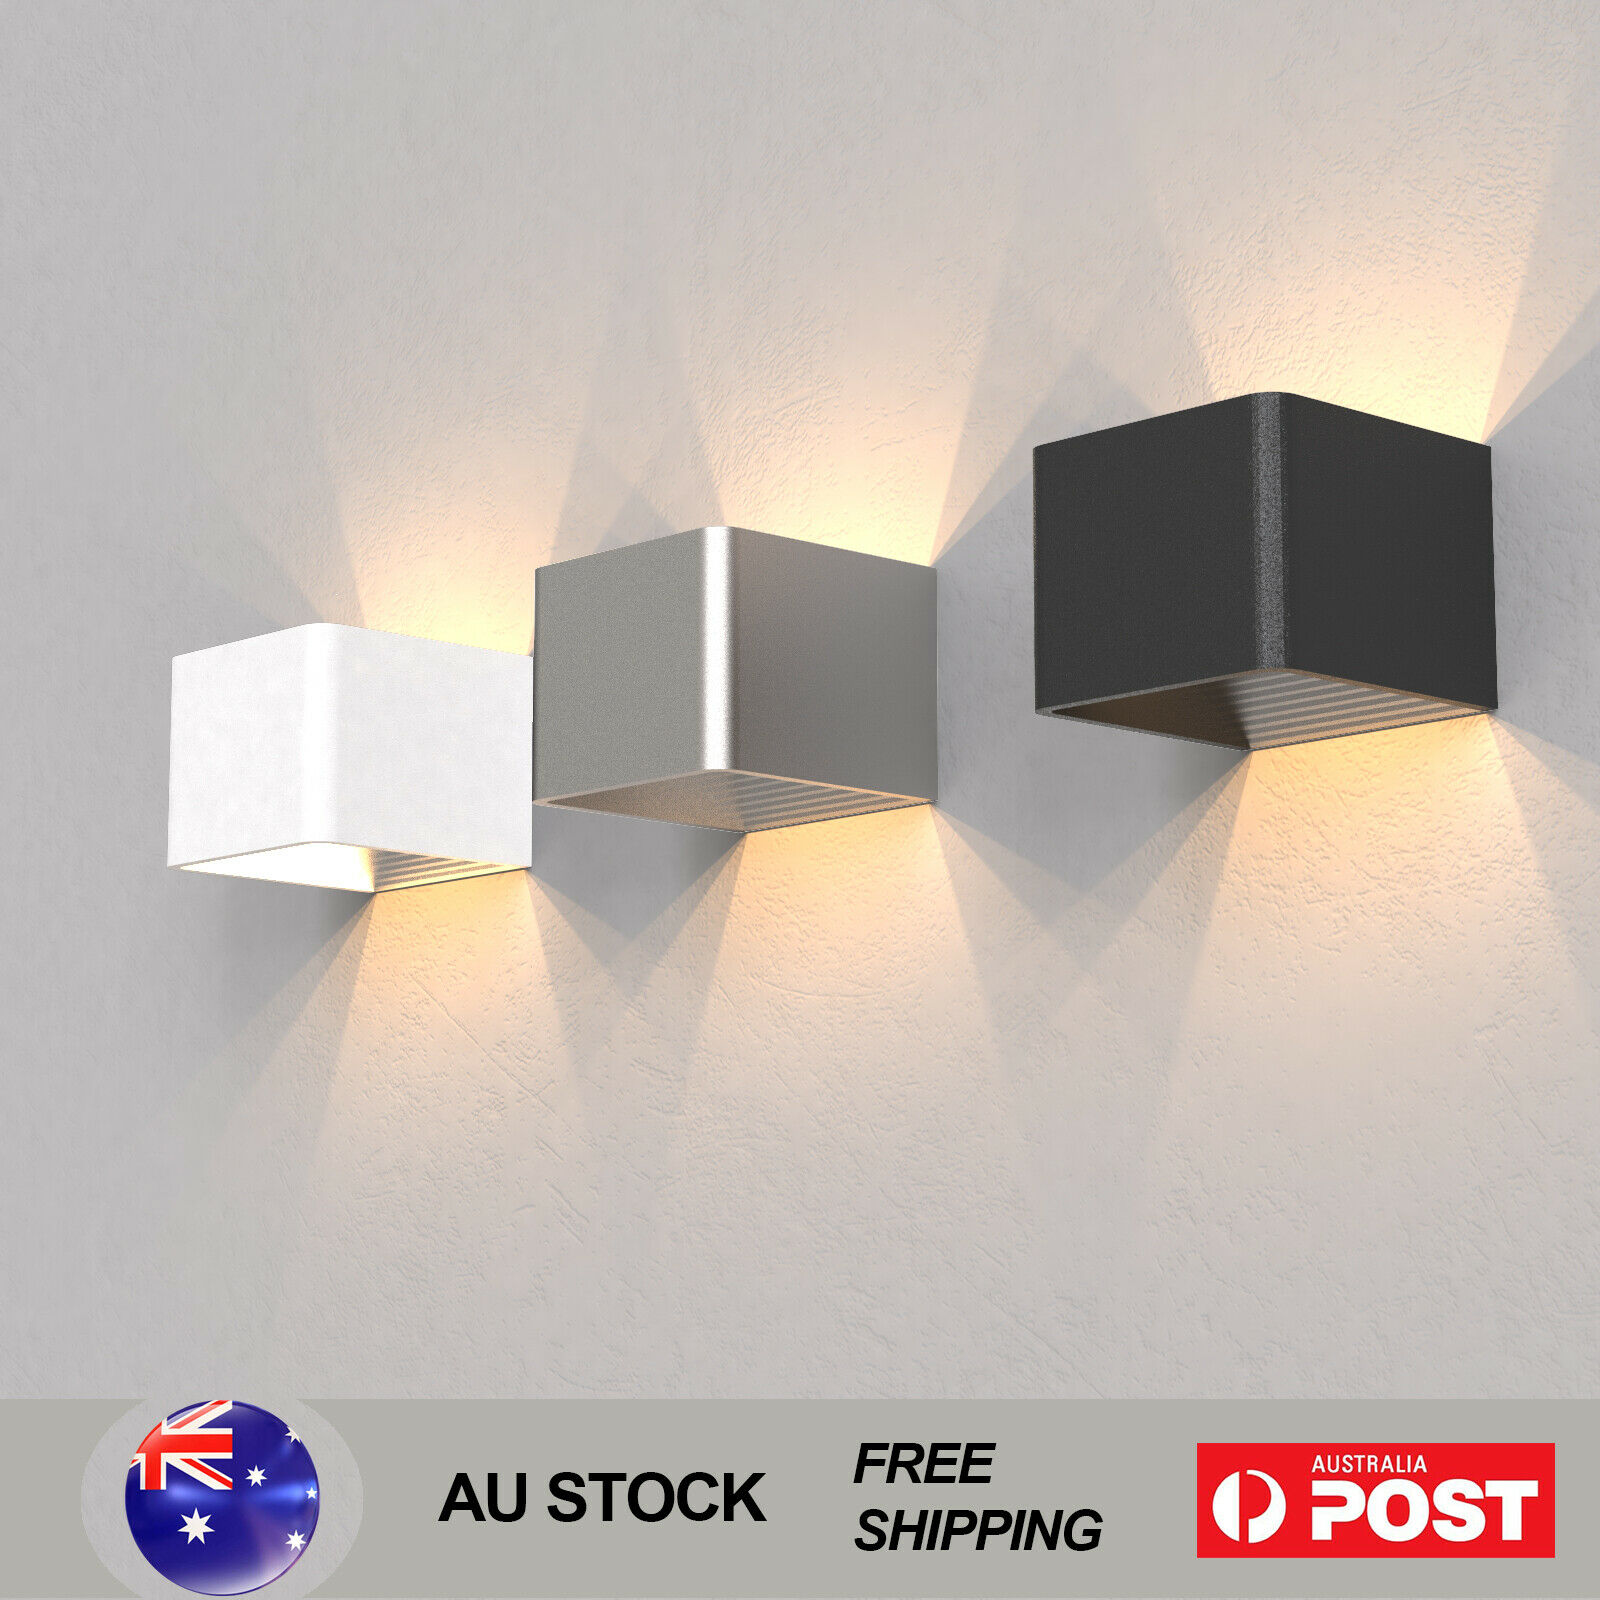 Led cubic wall light beside modern indoors lights sconce for Modern sconce light fixtures